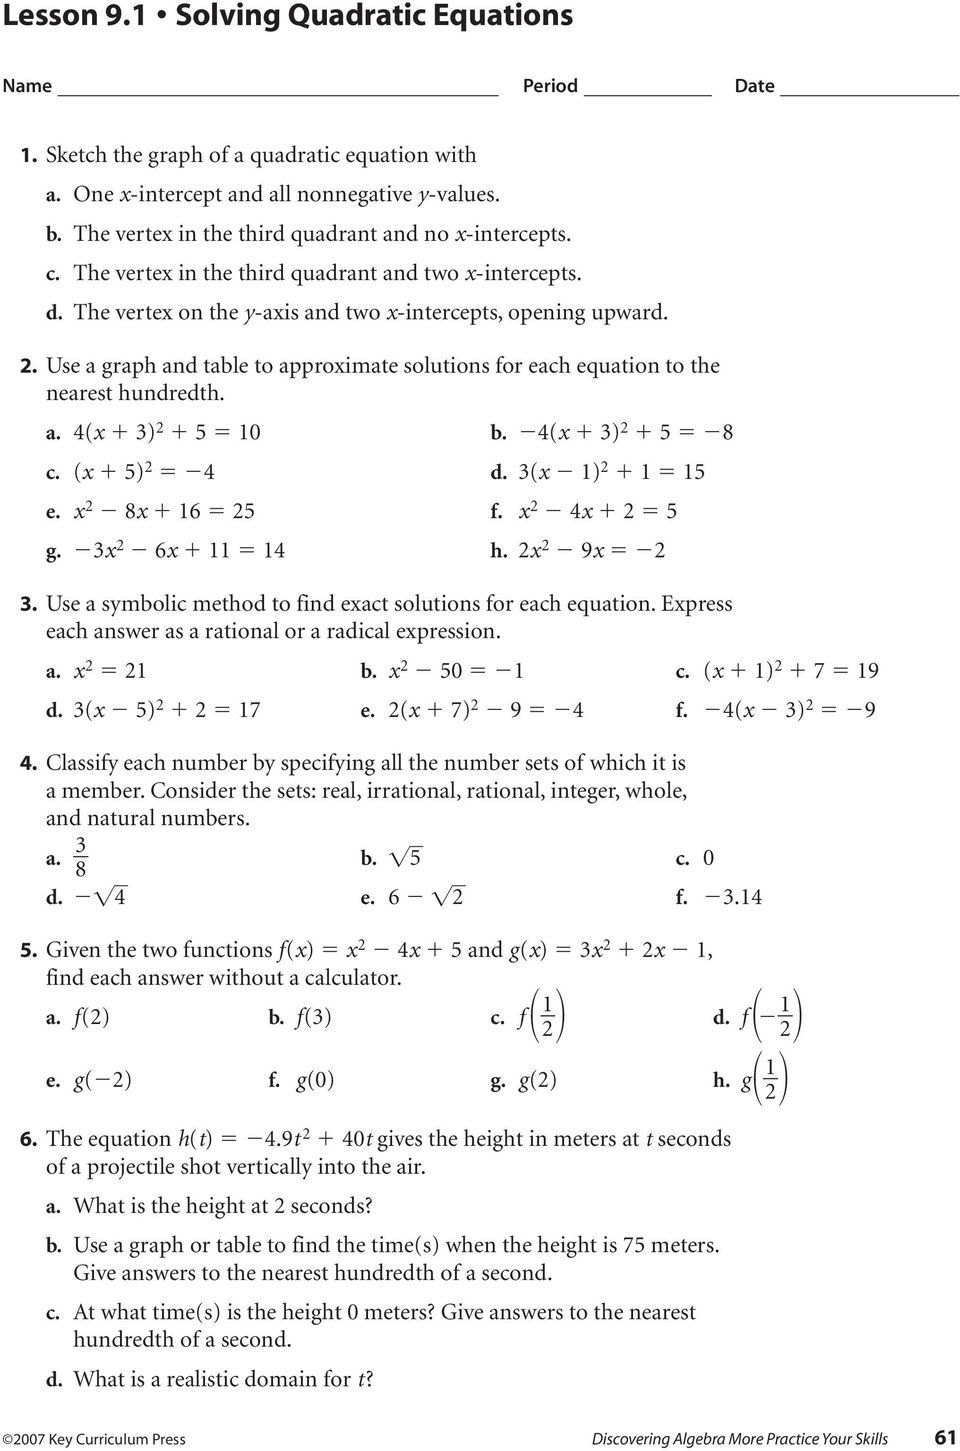 7 solving Quadratic Equations by Factoring Worksheet